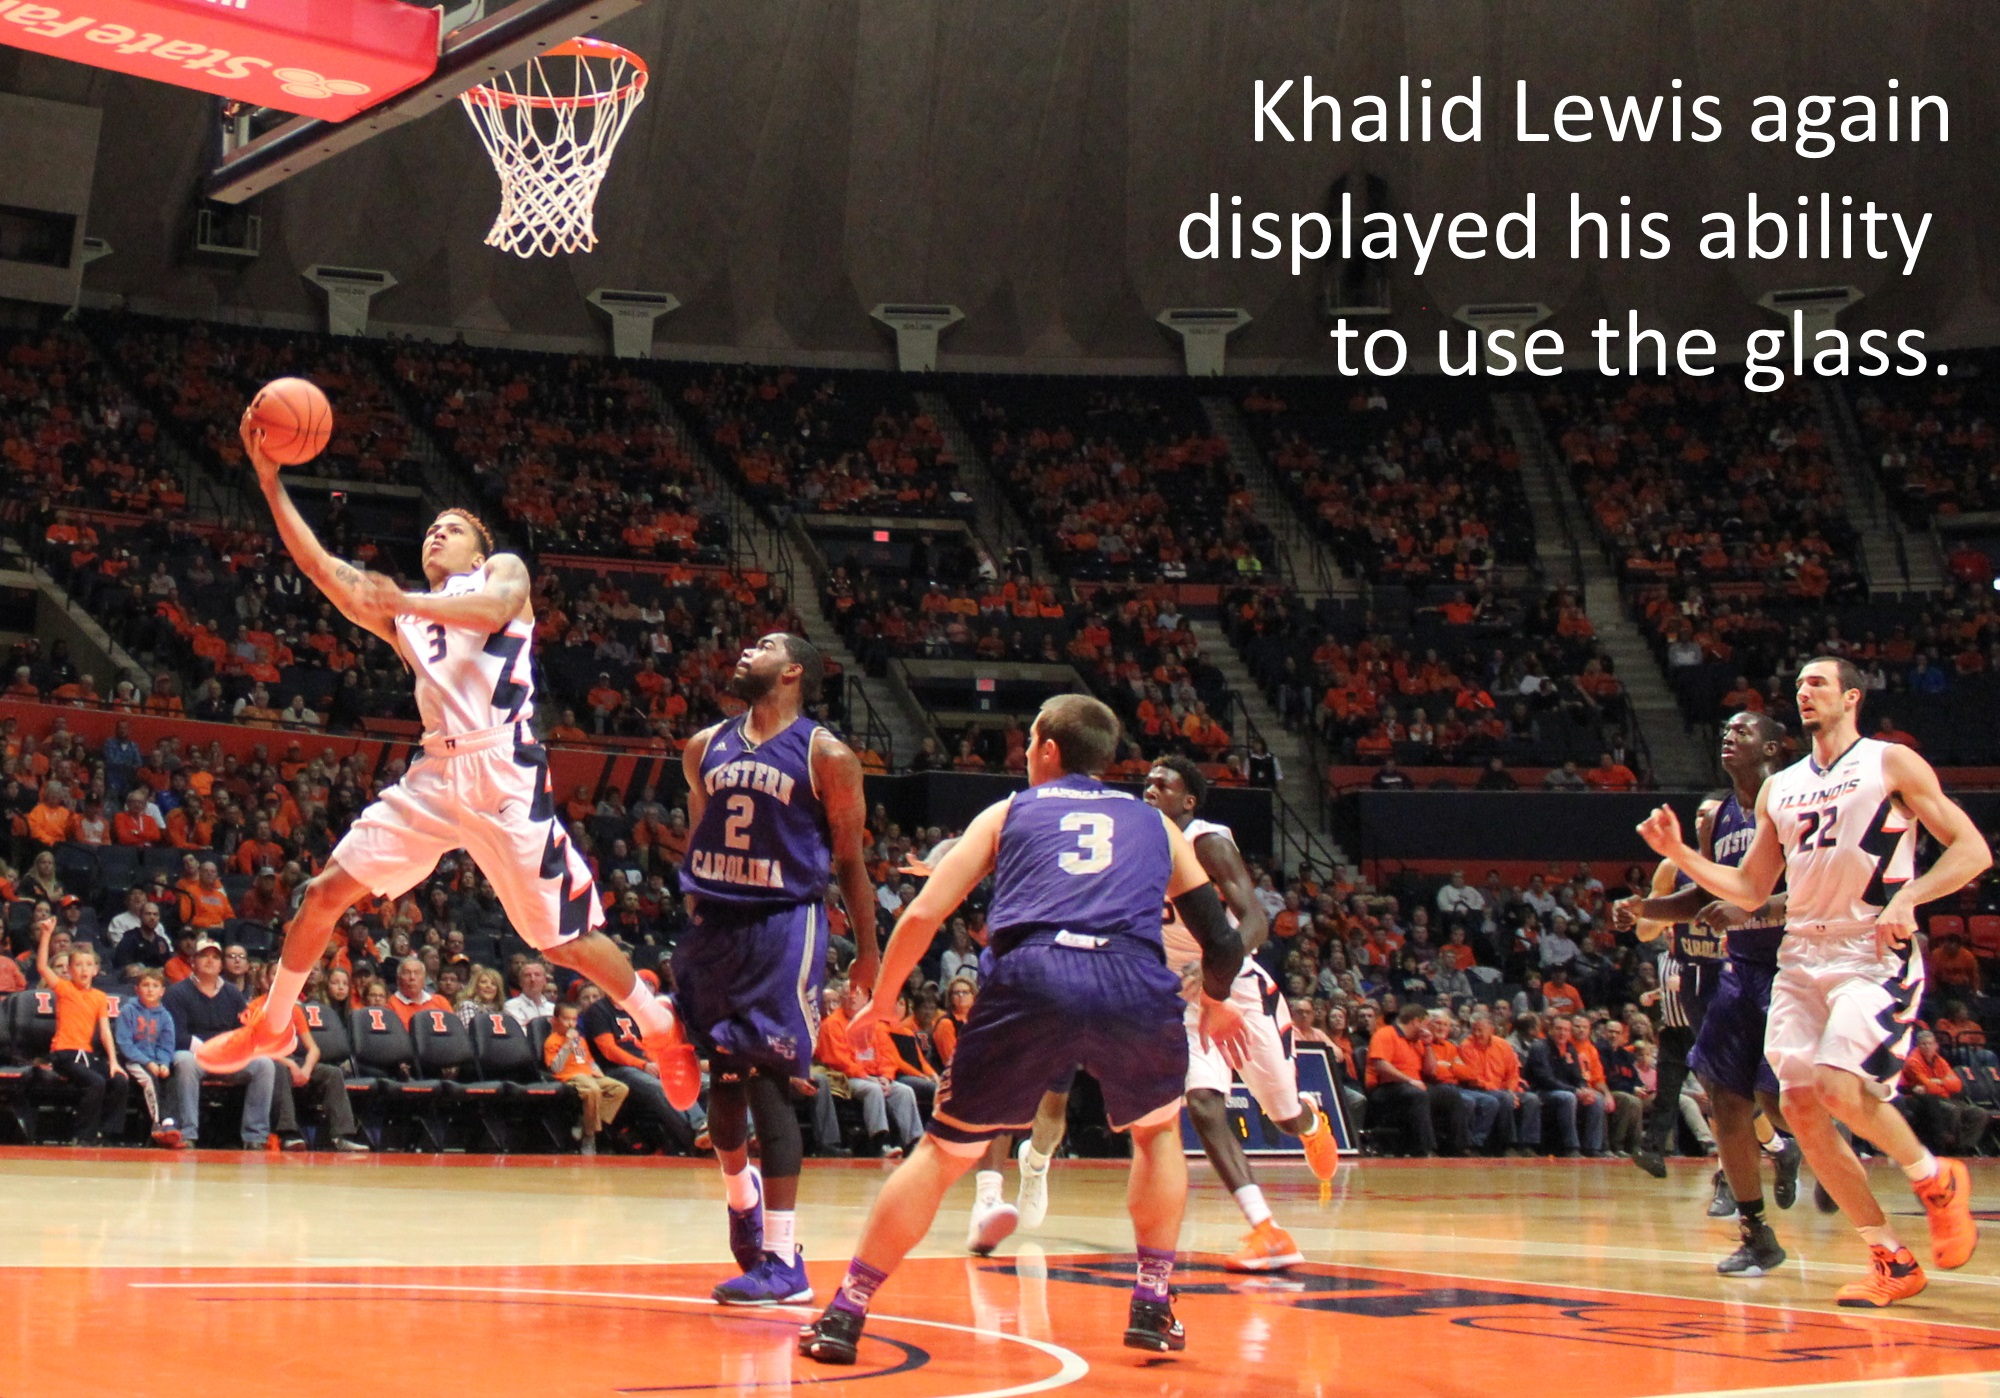 Khalid Lewis used the glass